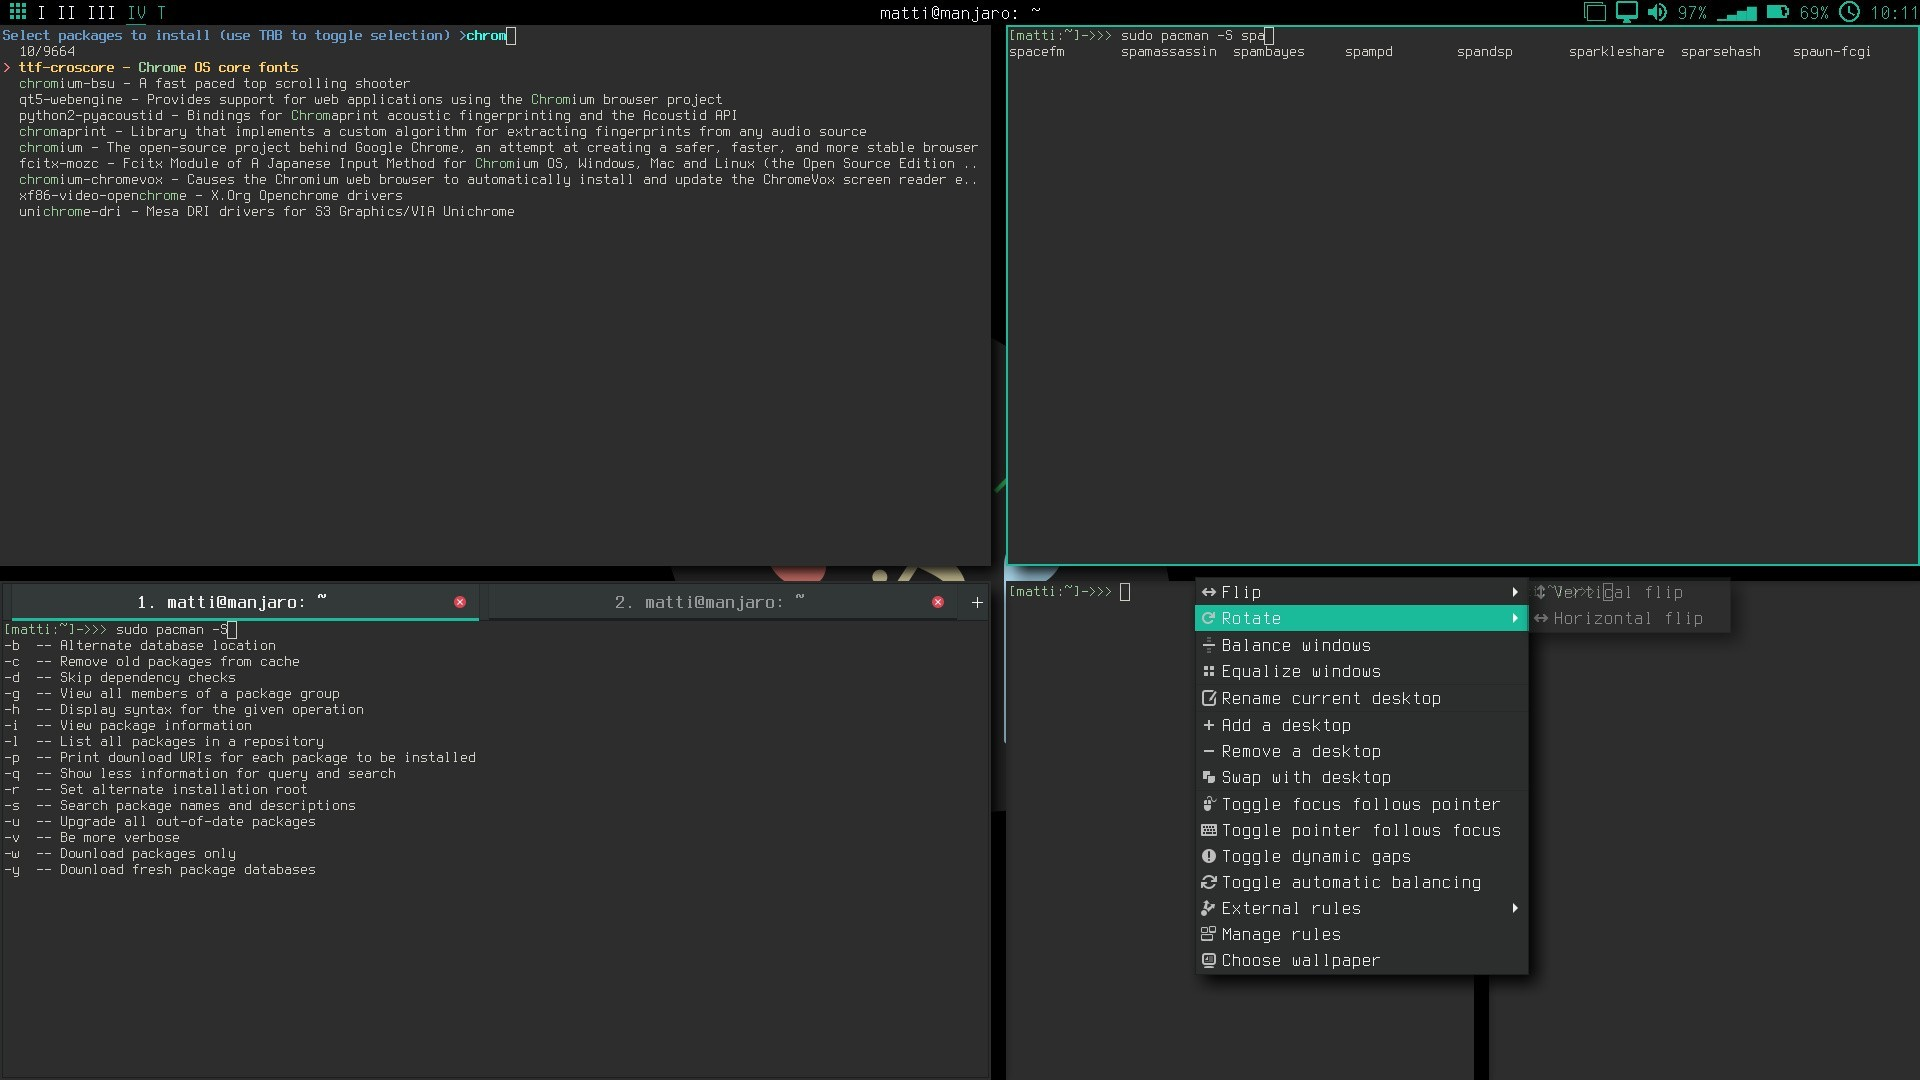 Manjaro Linux Bspwm 16 05 Edition Officially Released